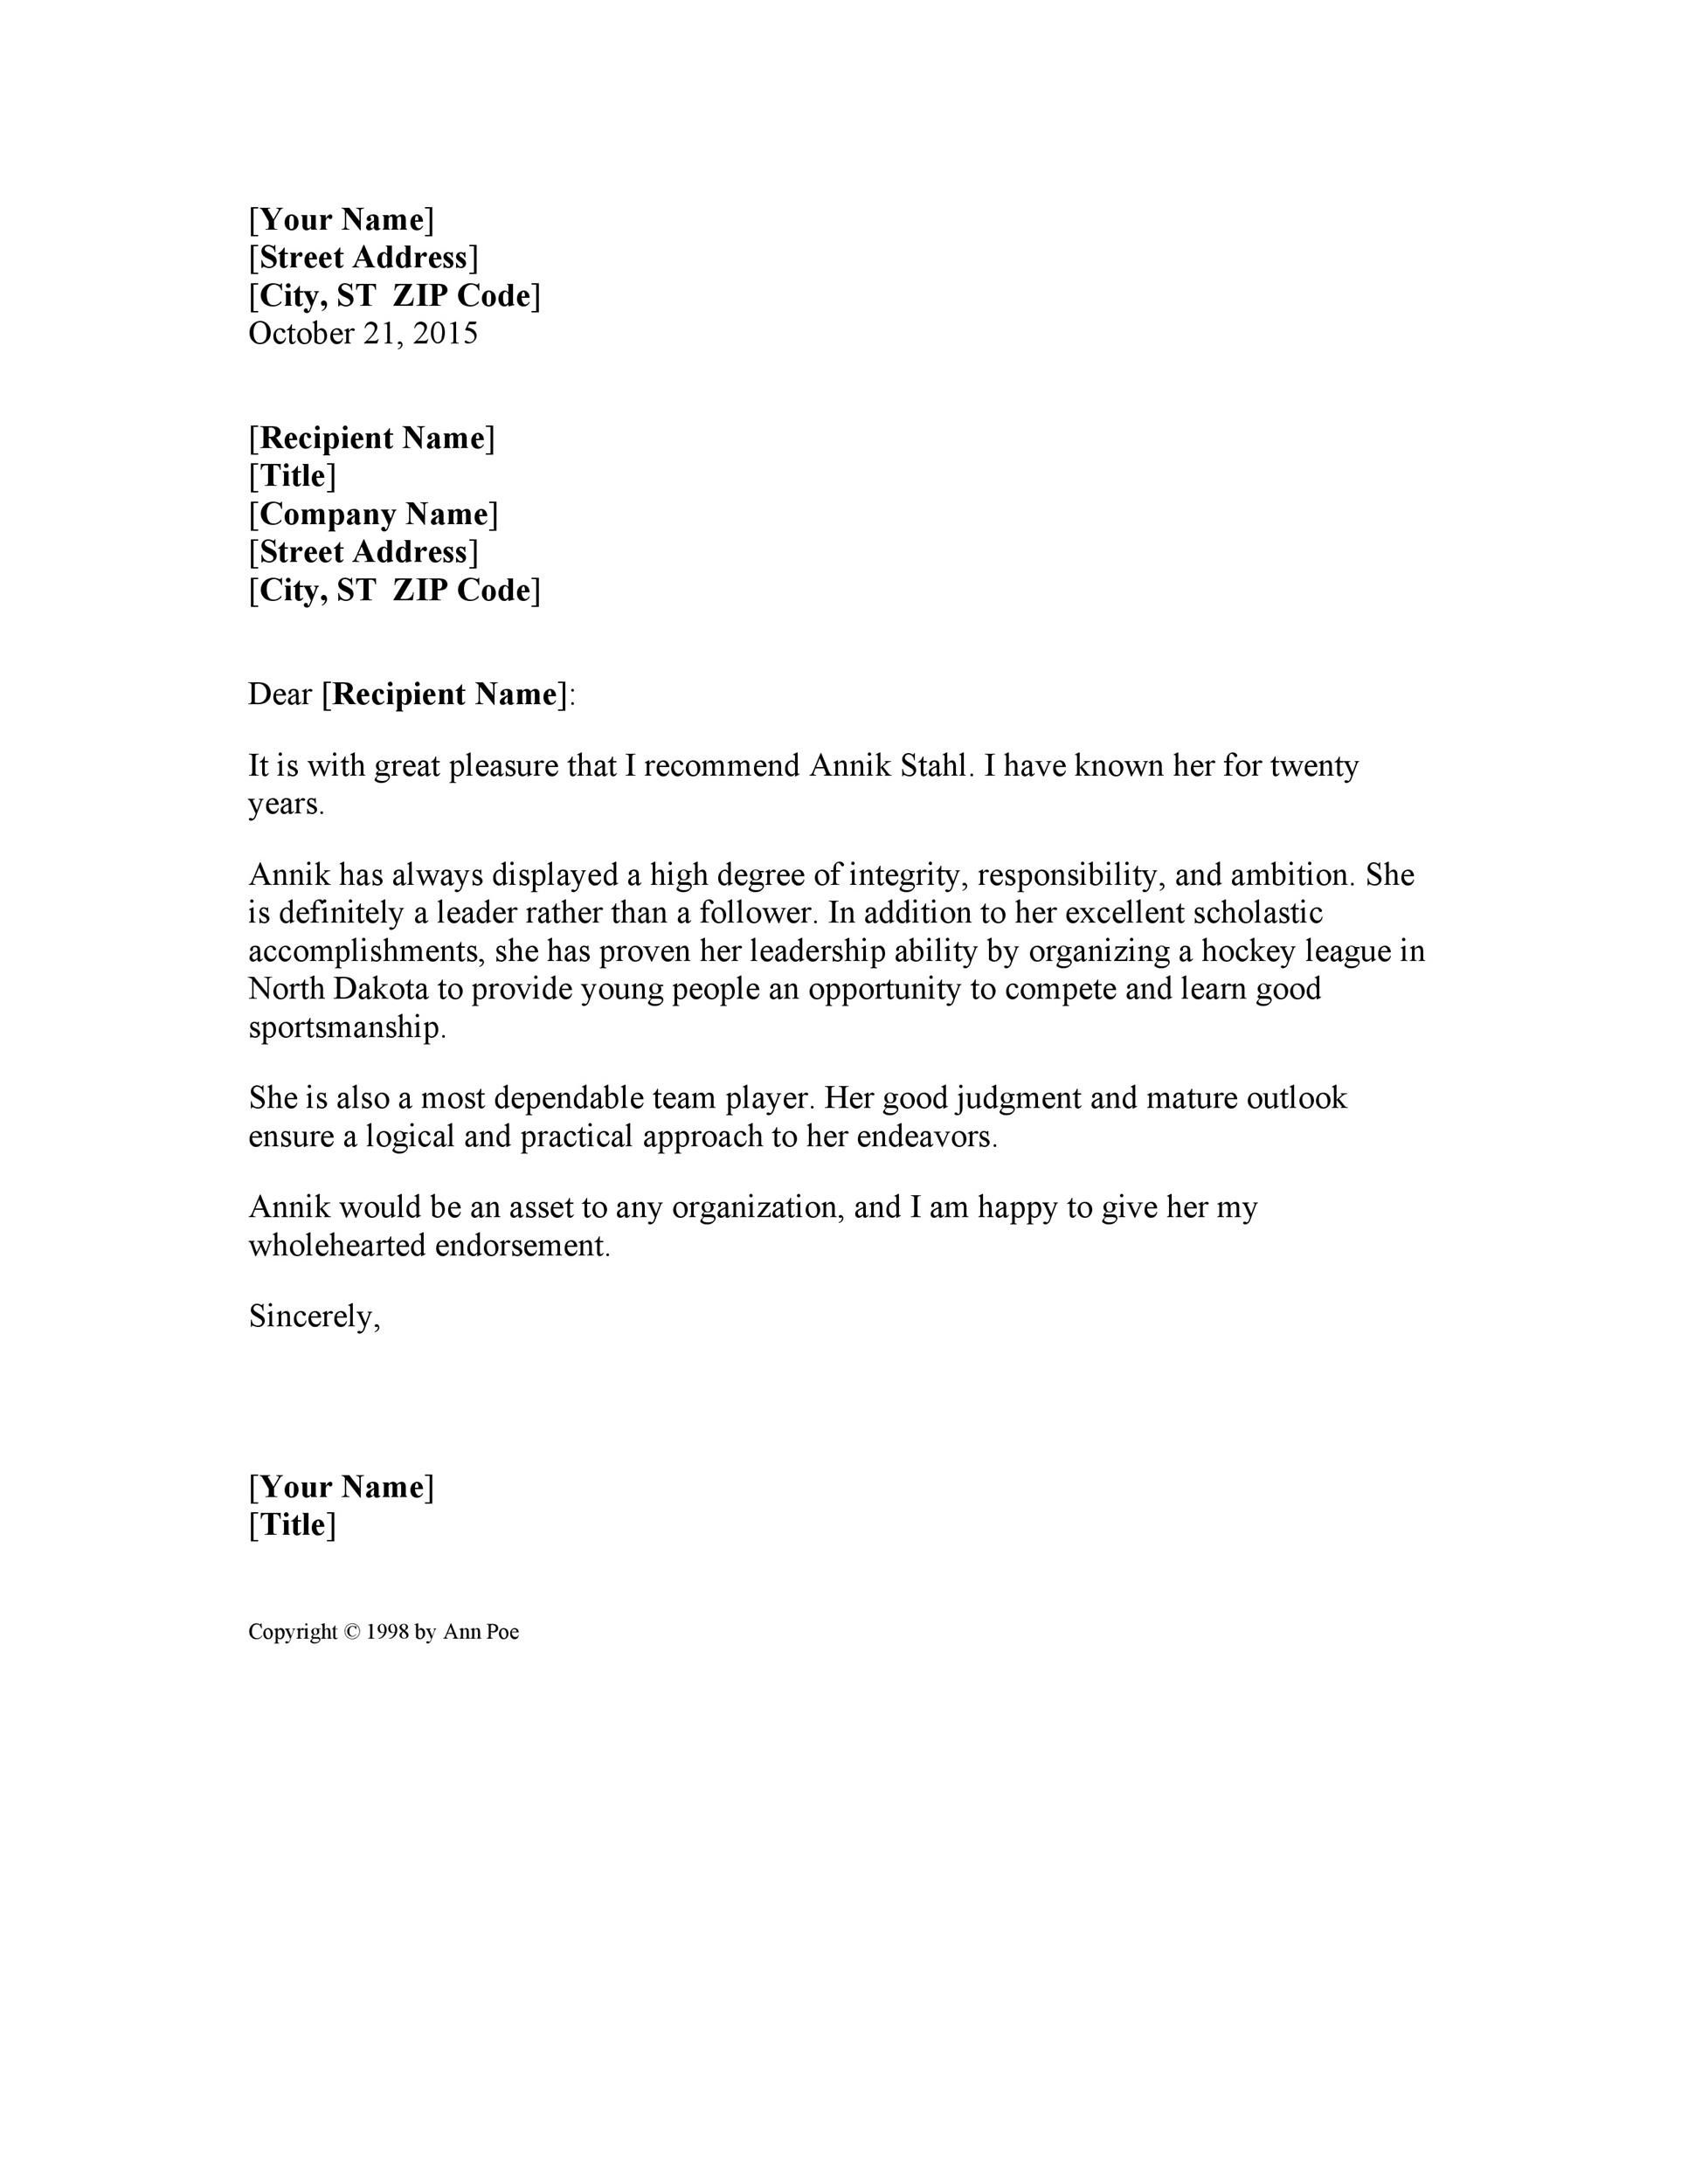 007 Shocking Personal Reference Letter Template Sample  Character Word For Rental ApplicationFull